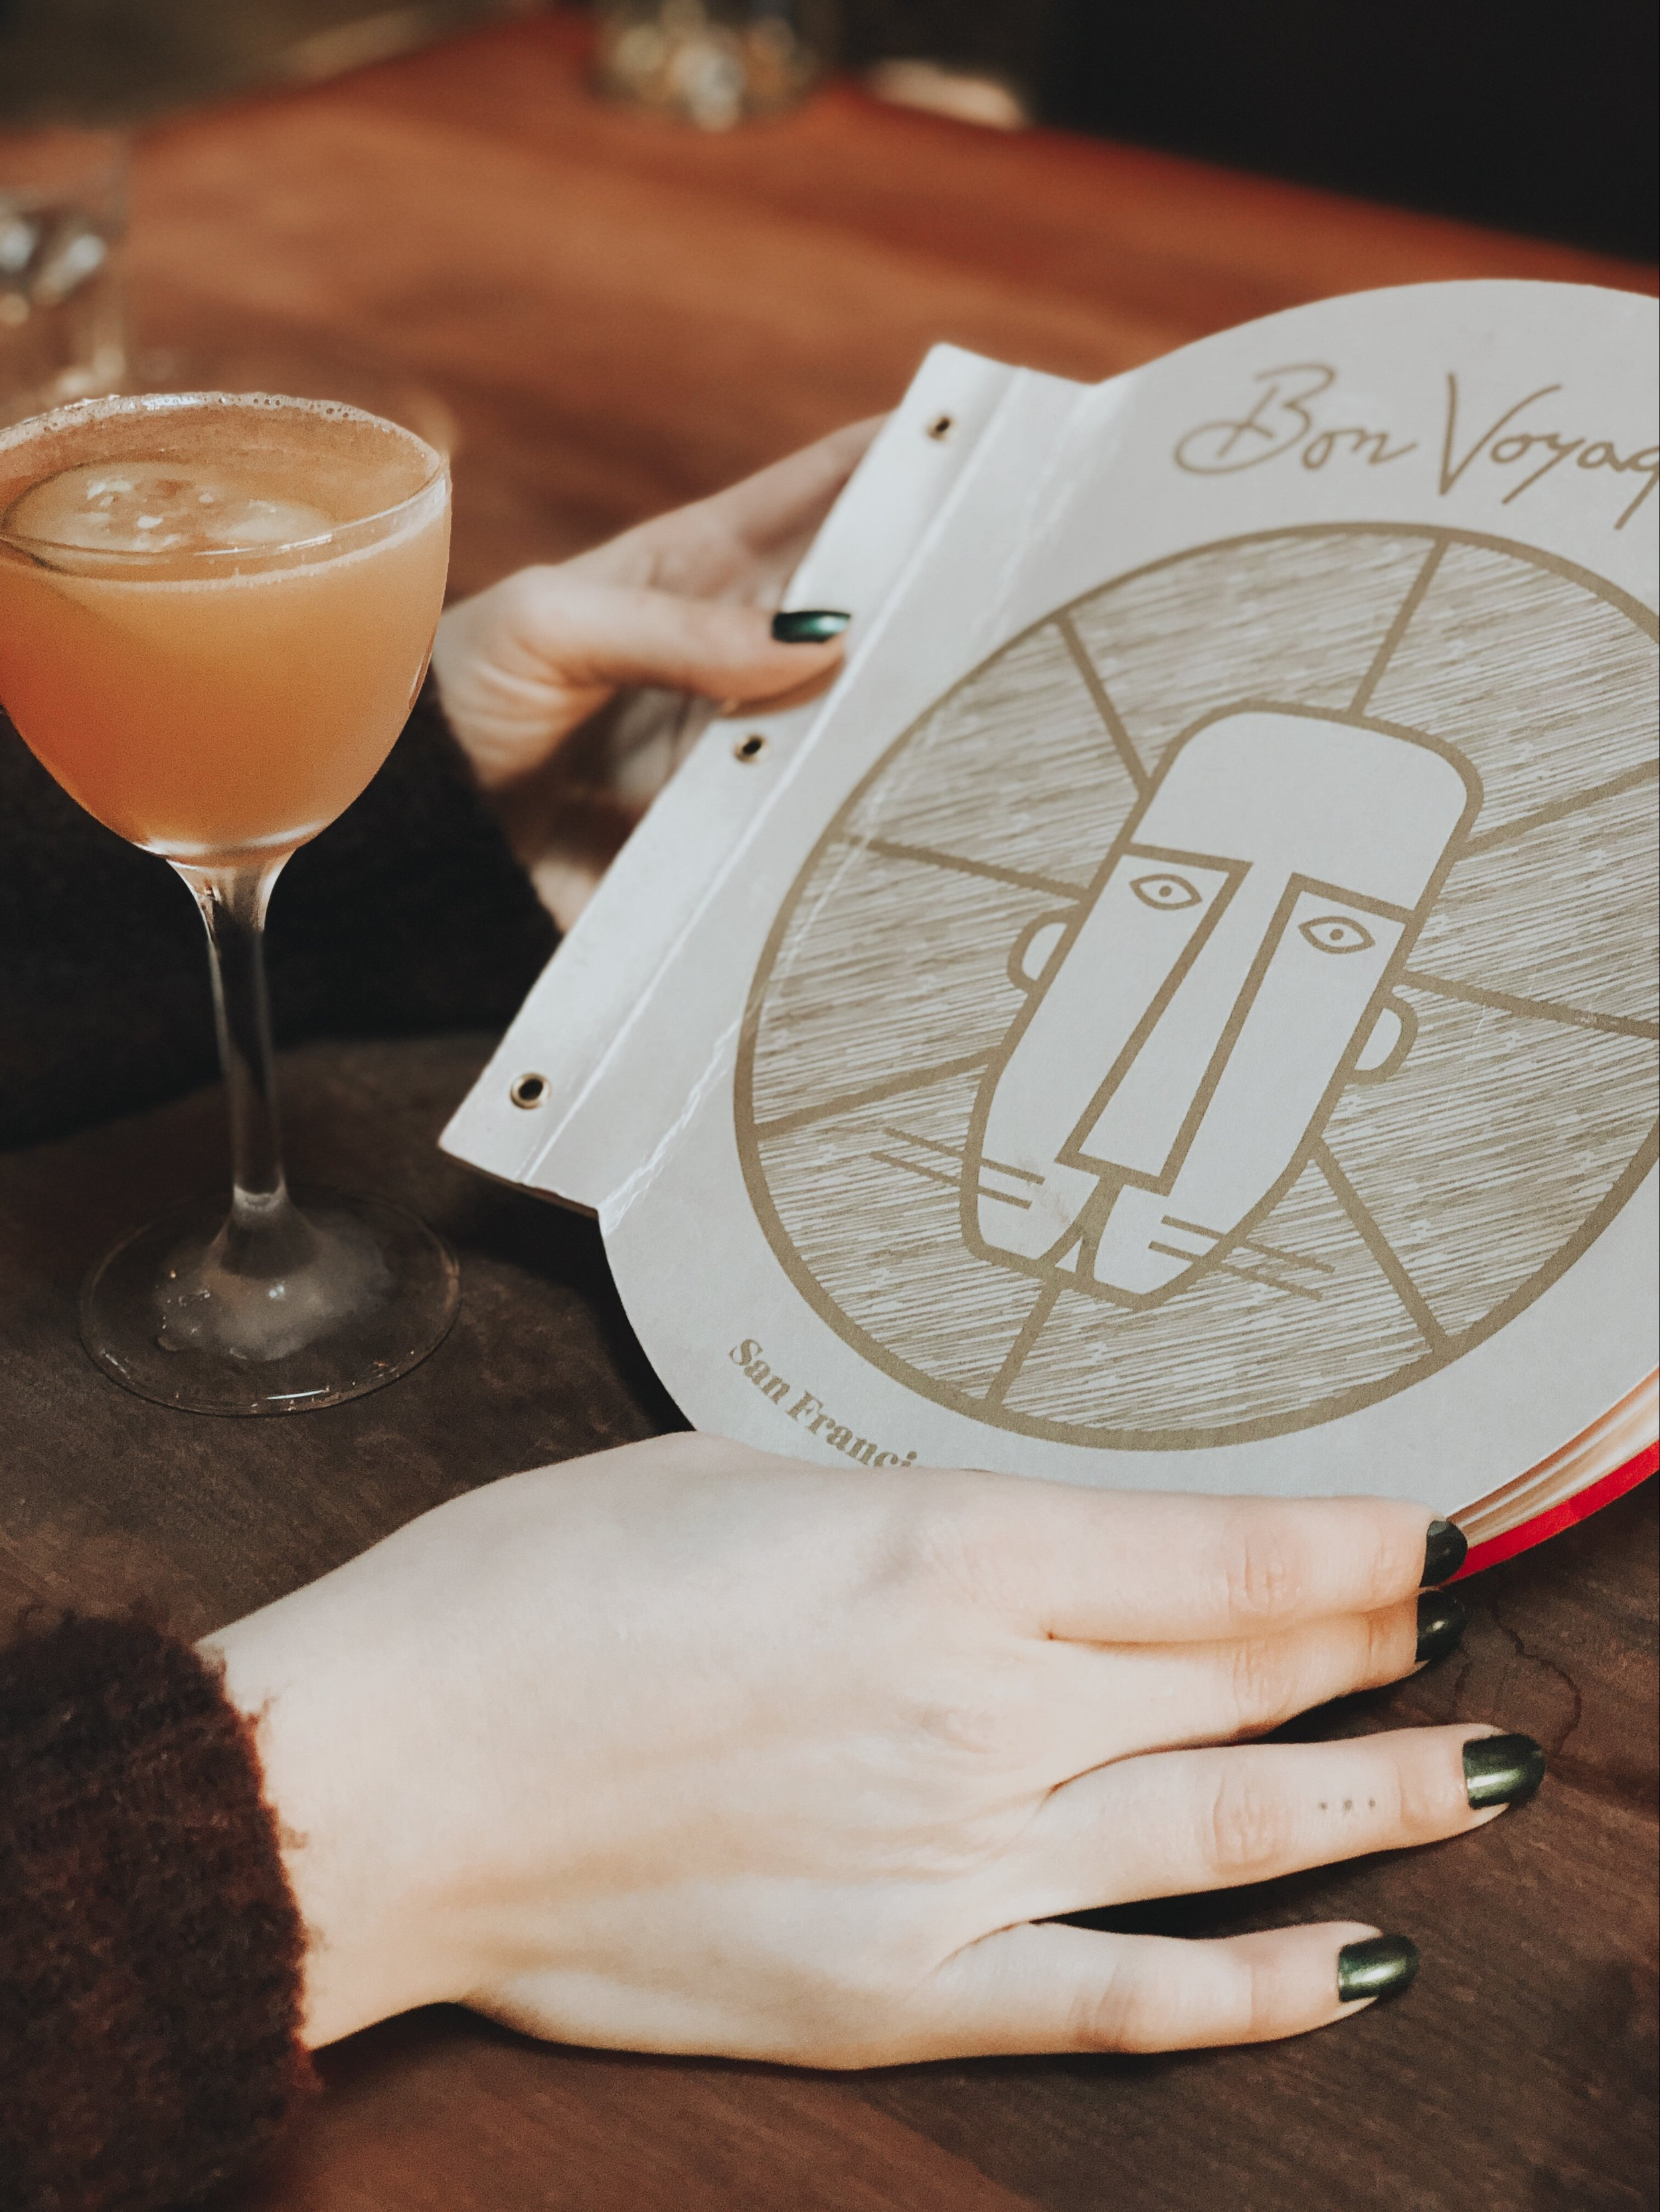 Bon Voyage is a must for inventive cocktails in San Francisco